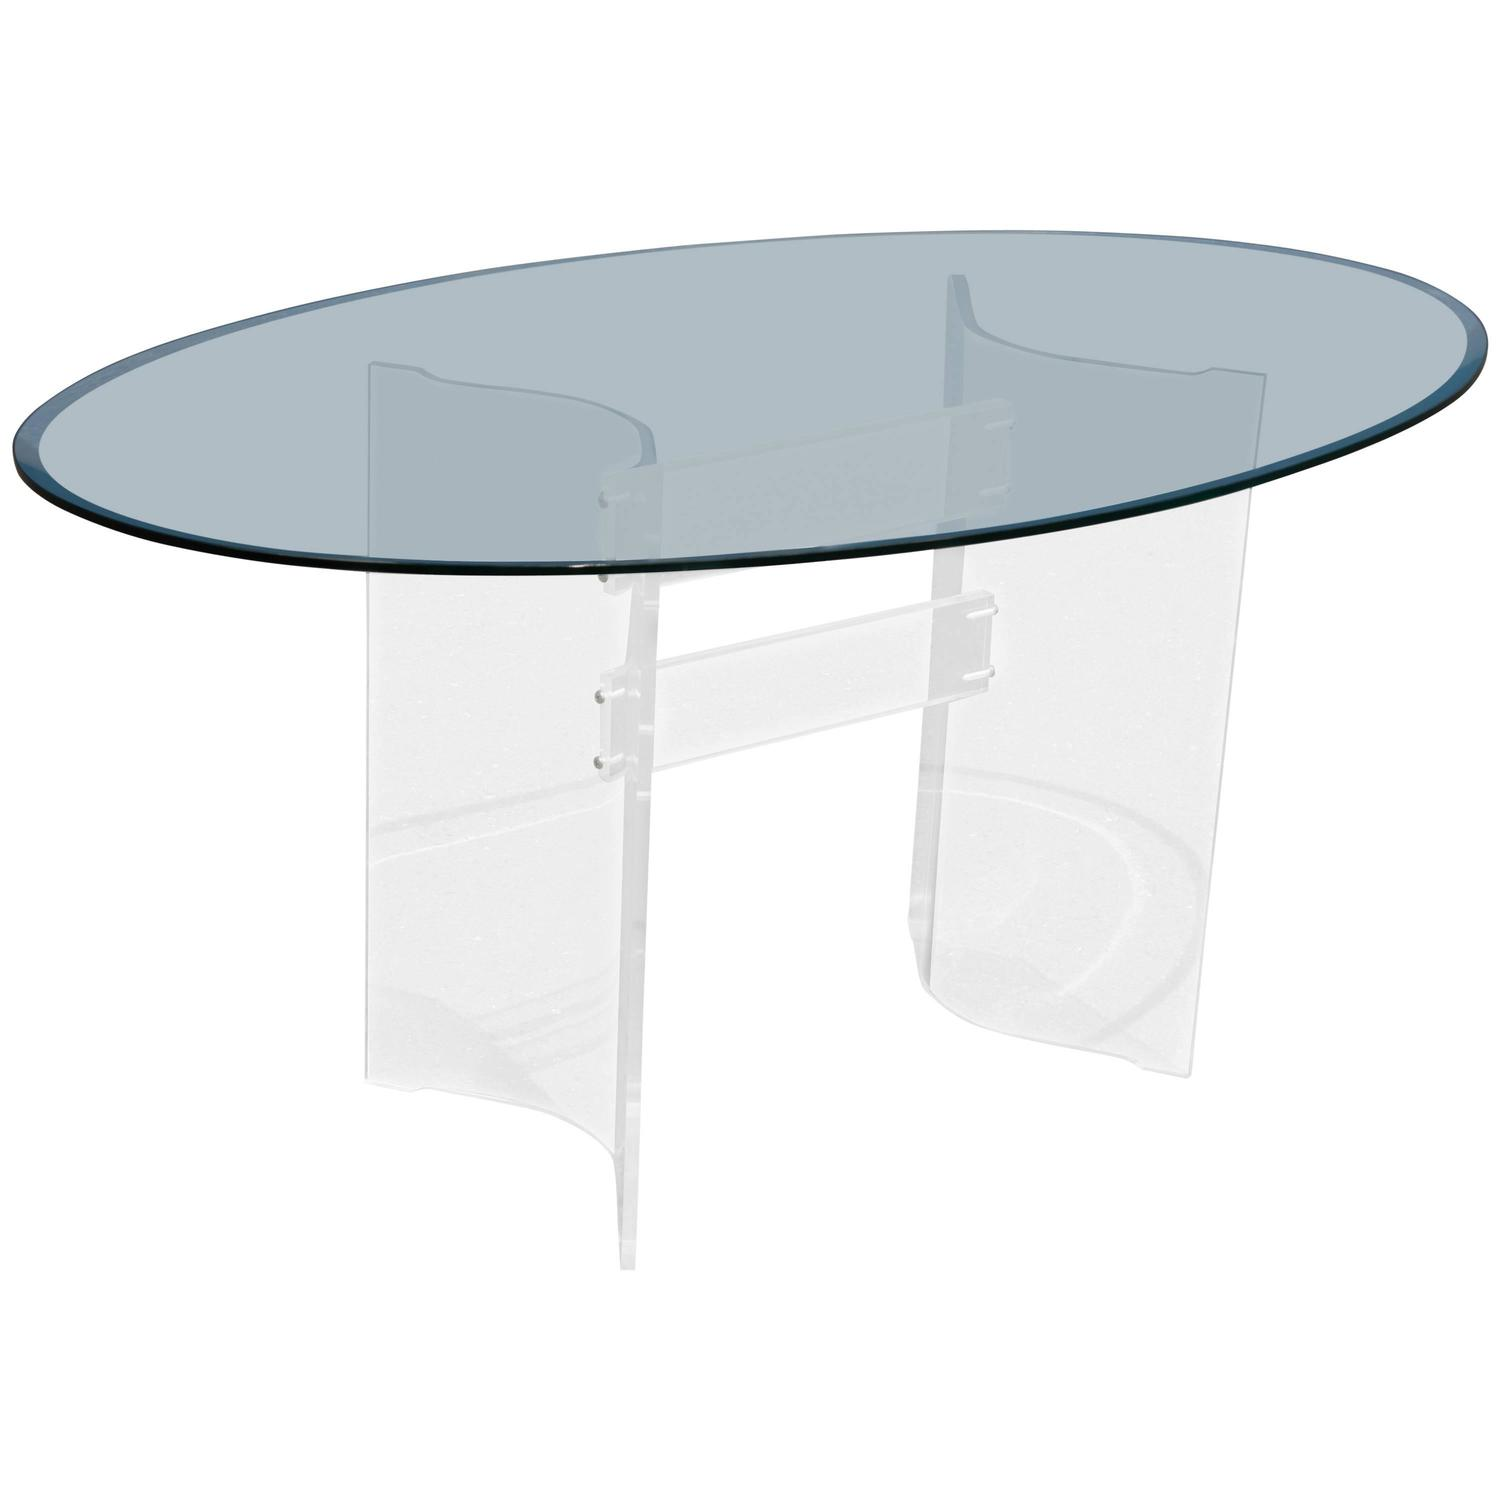 mid century modern transparent lucite and glass oval dining table desk for sale at 1stdibs. Black Bedroom Furniture Sets. Home Design Ideas